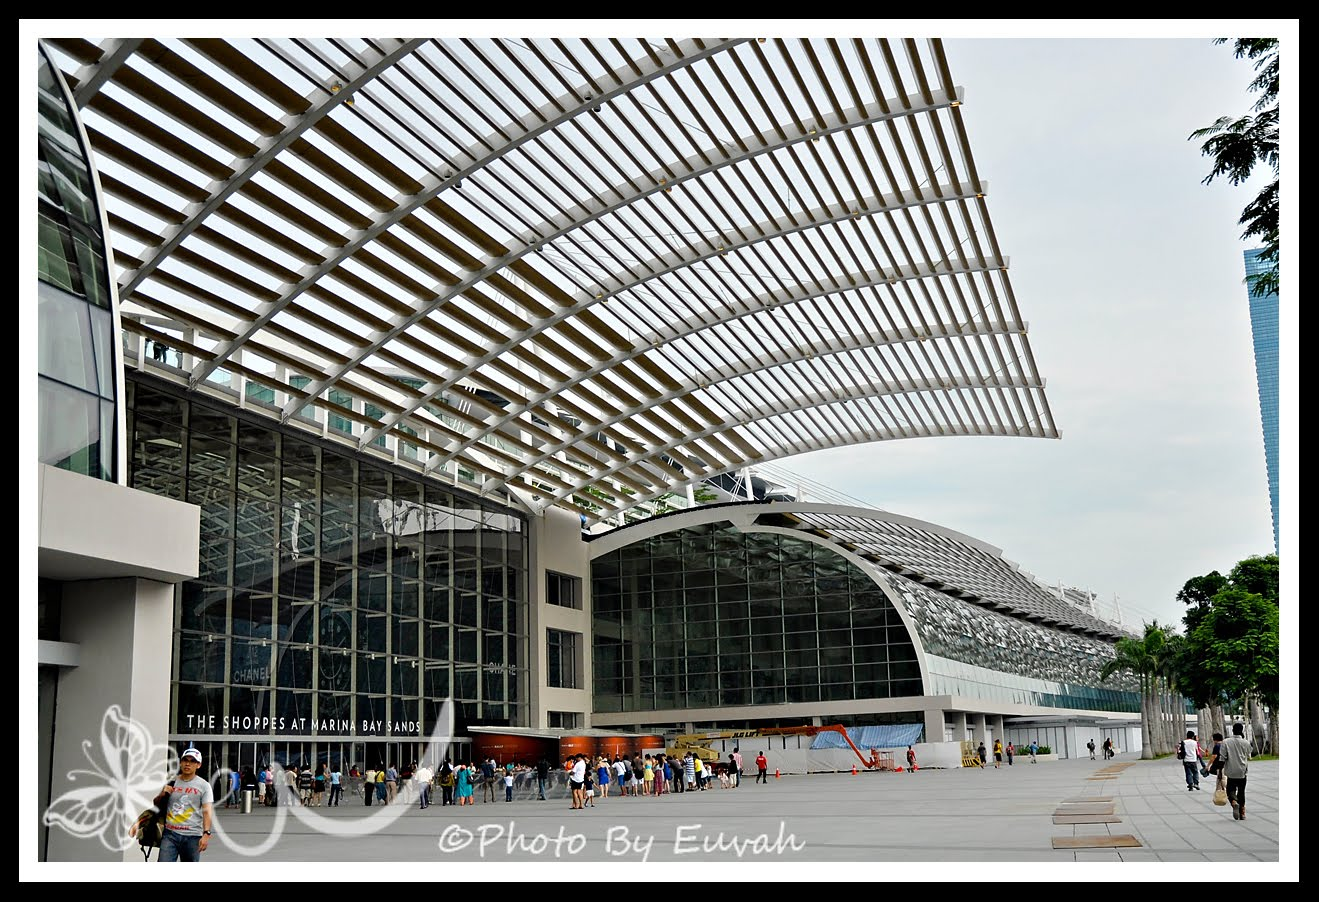 Architectural design architectural firm marina bay sand for Architecture firms in singapore